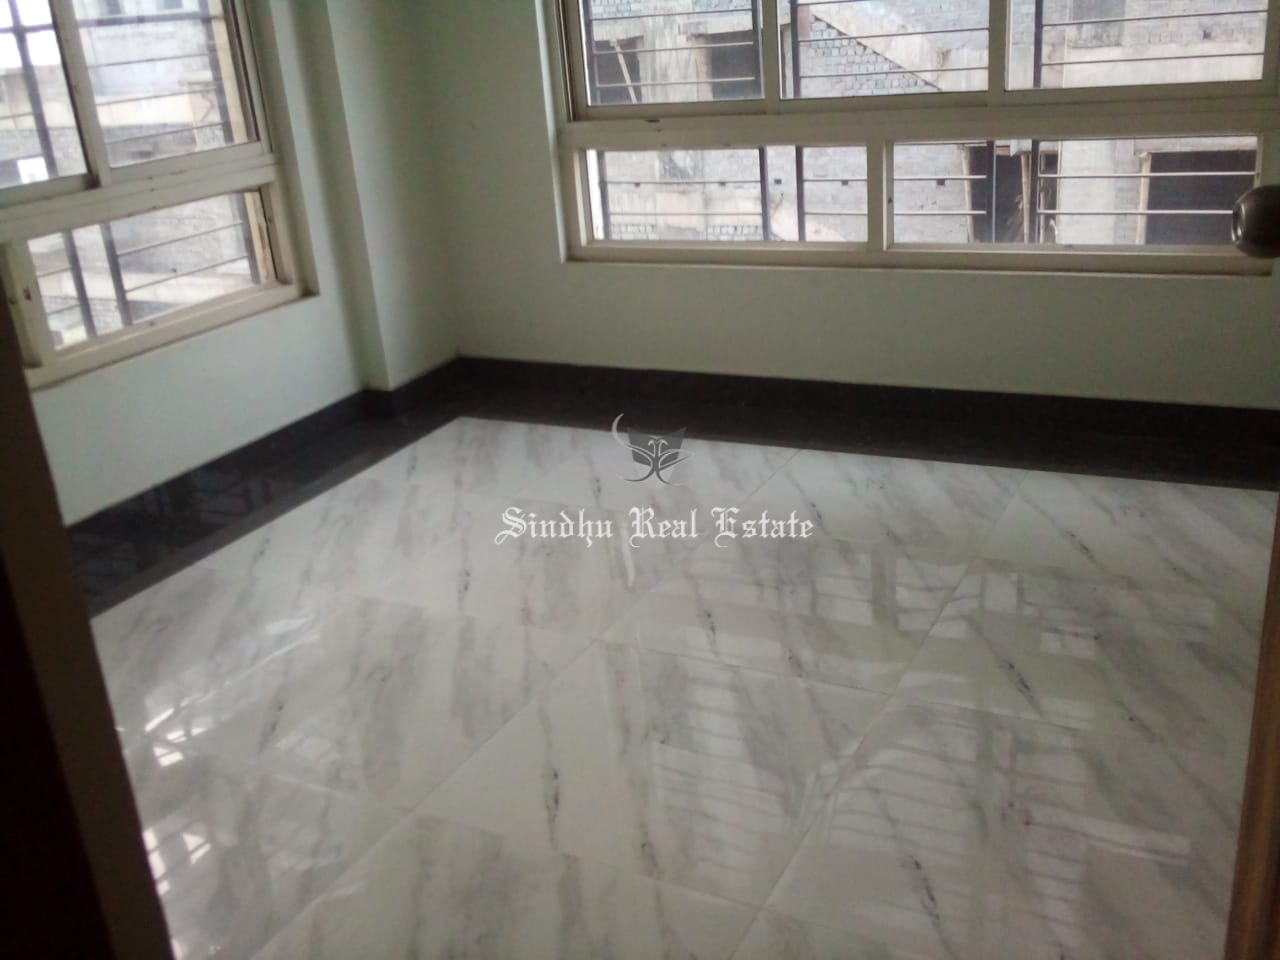 Rent 4 BHK flat at New town area